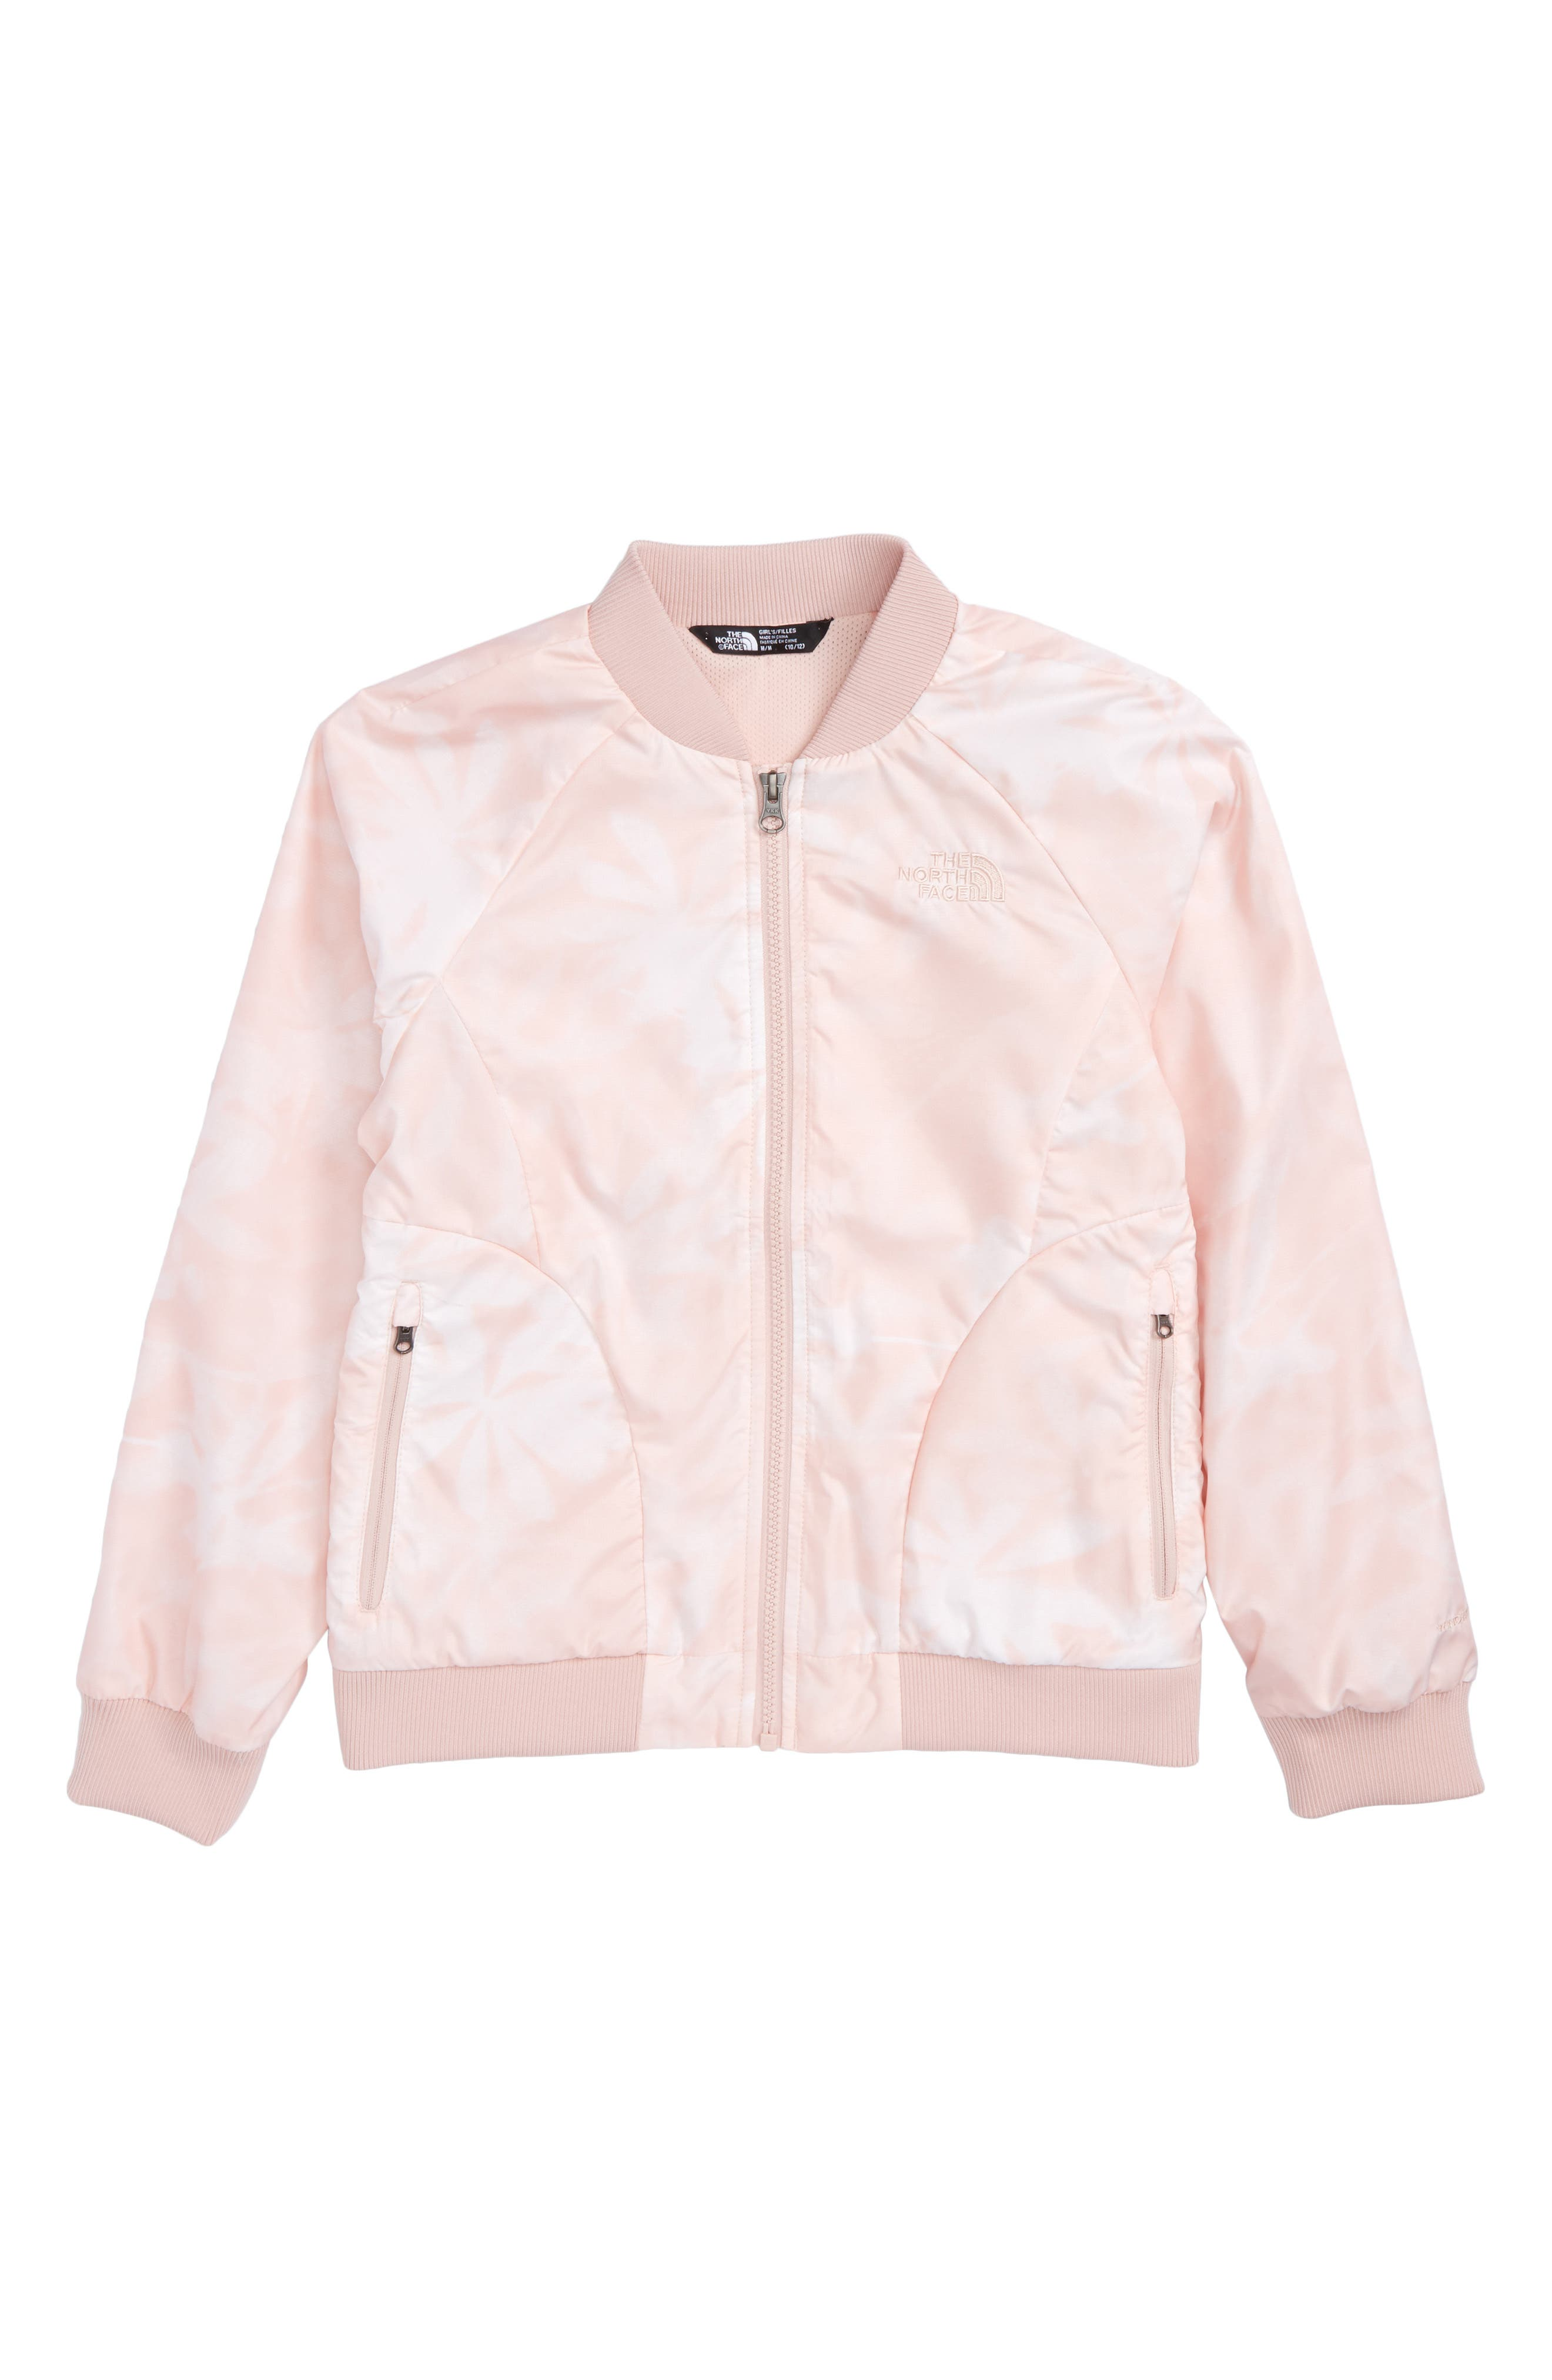 Flurry Windproof Bomber Jacket,                             Main thumbnail 1, color,                             Evening Sand Pink Lupine Print